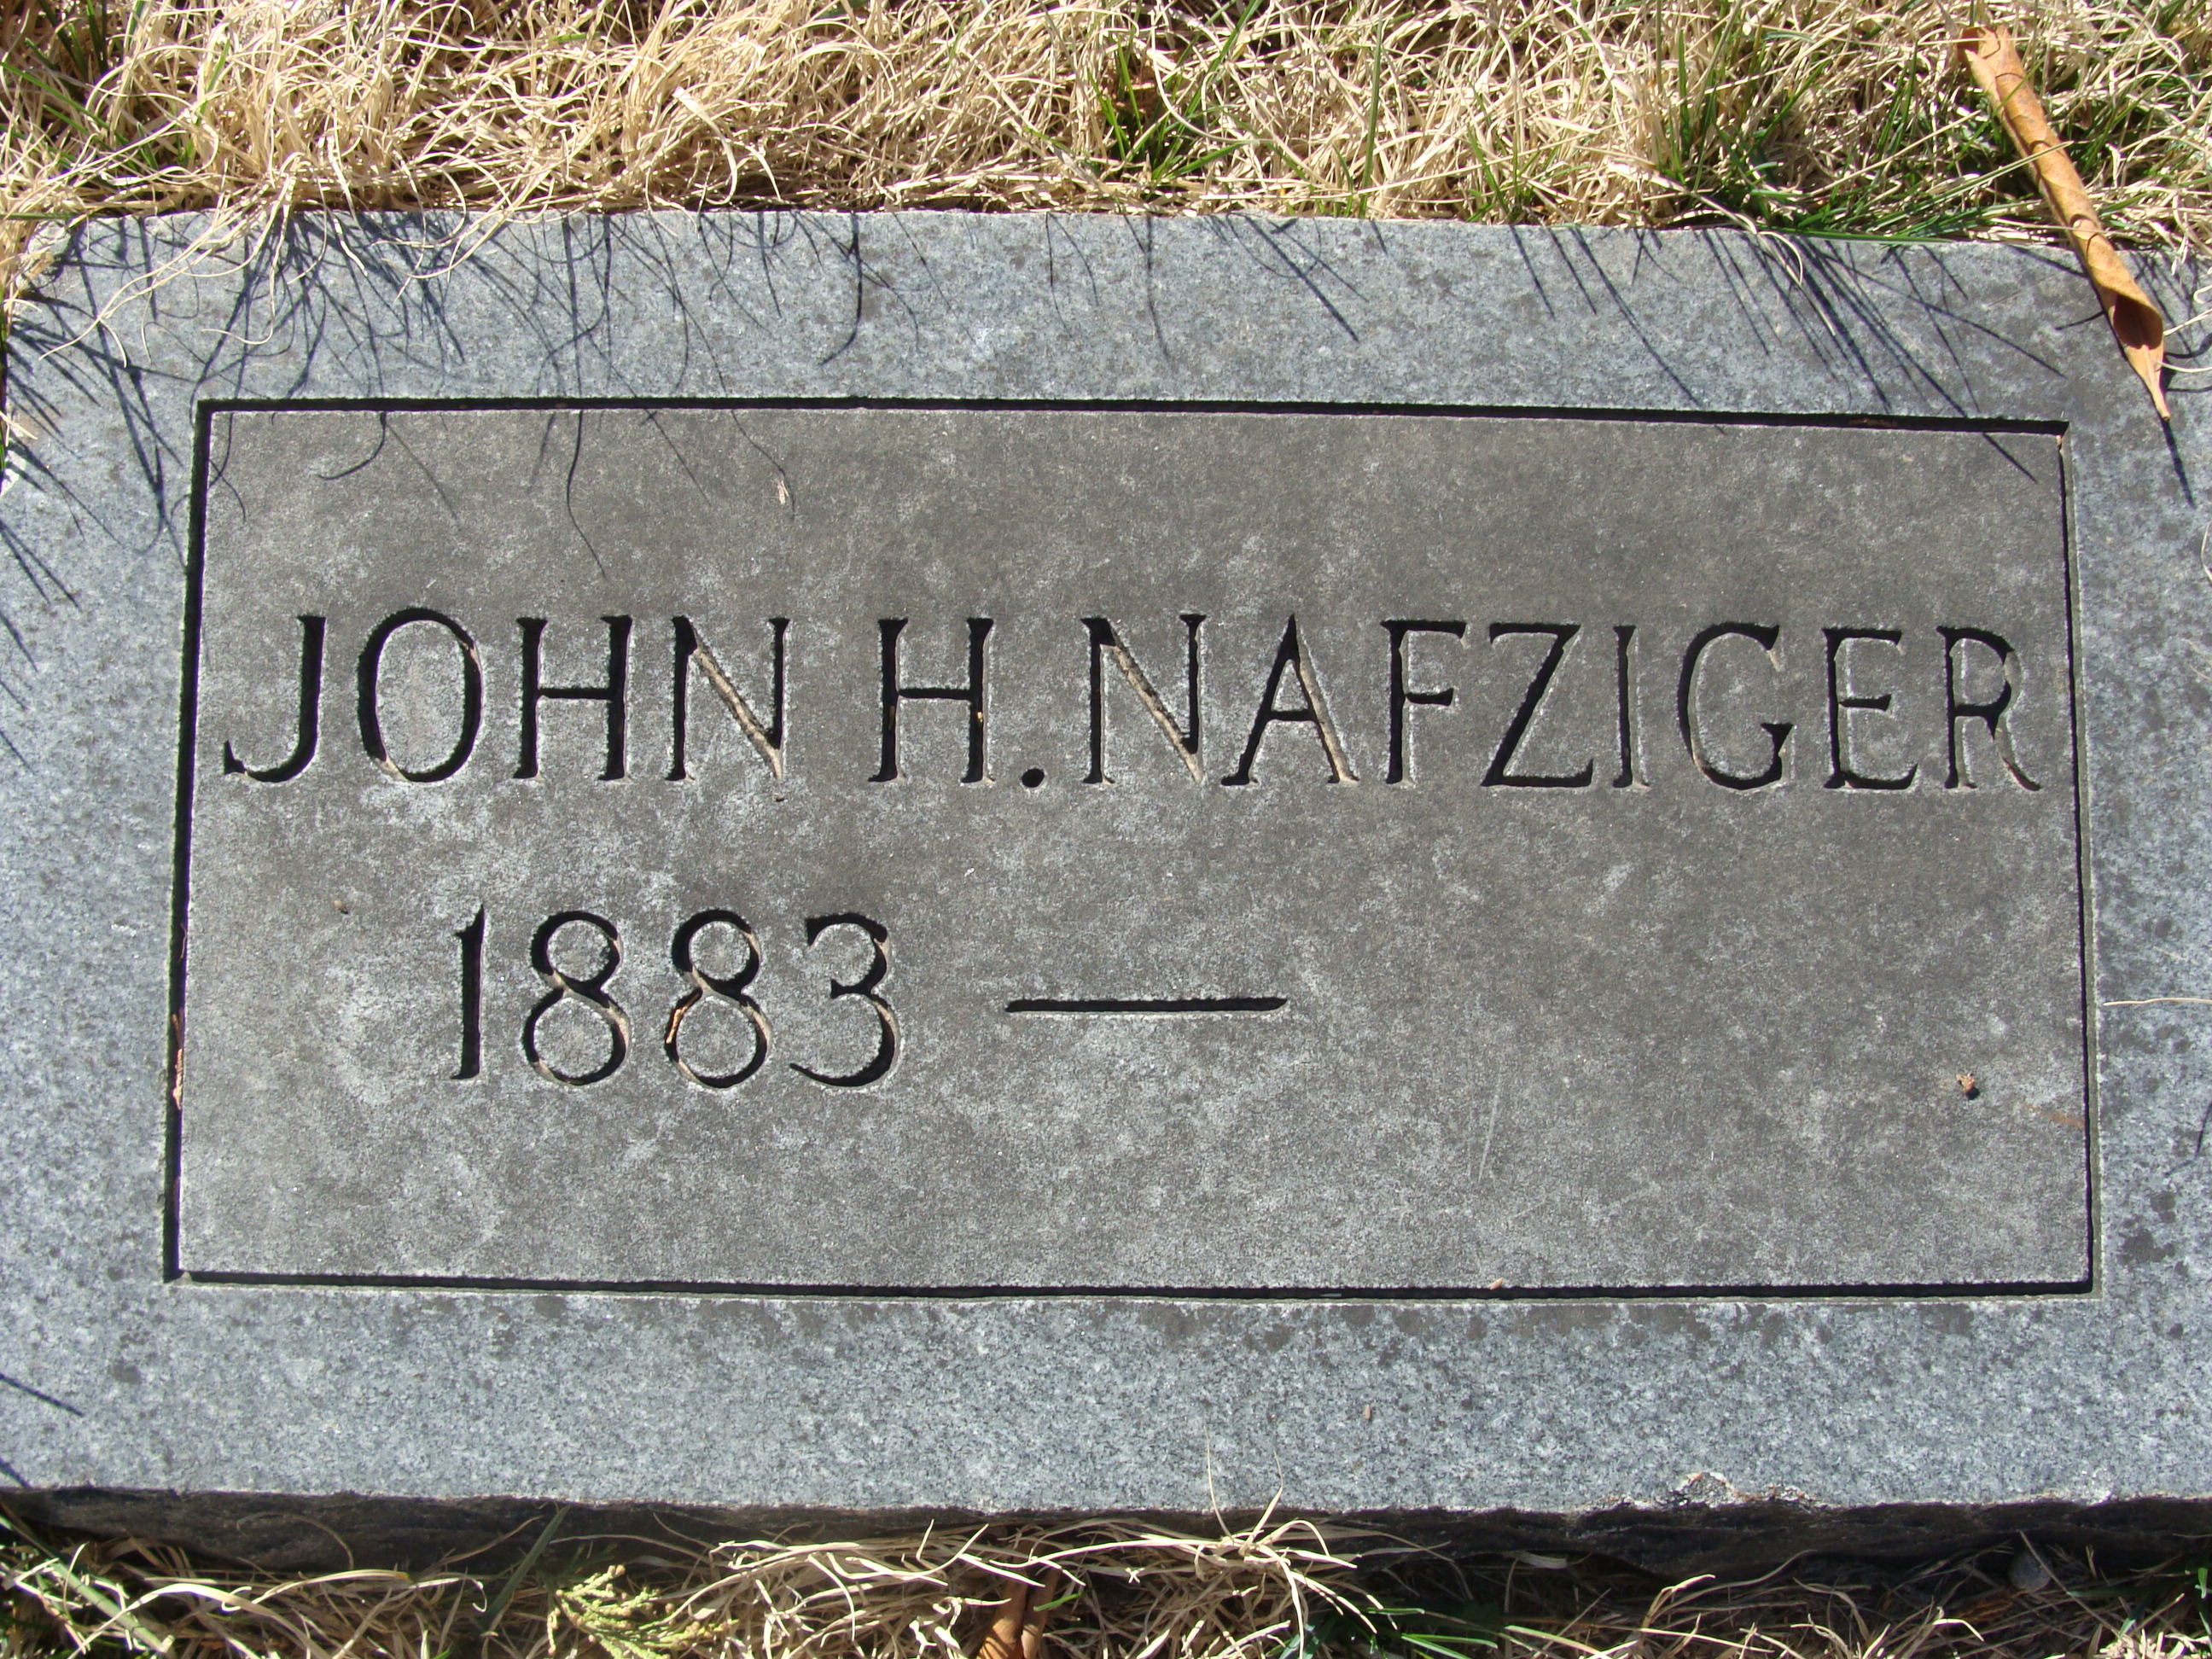 Special Agent John H. Nafziger | Atchison, Topeka and Santa Fe Railroad Police Department, Railroad Police